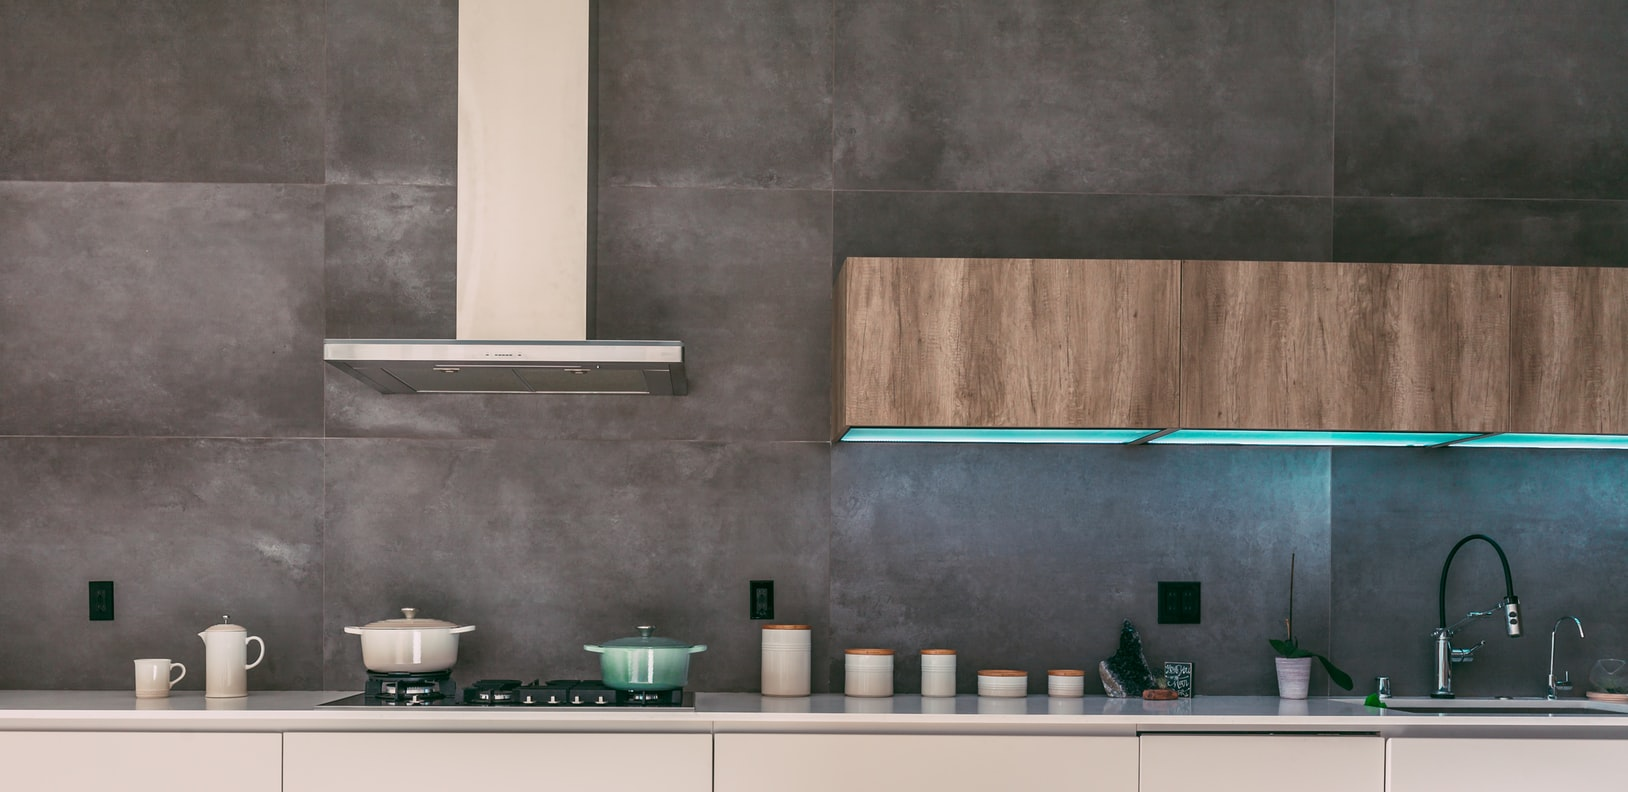 Why Hire a General Contractor for a Kitchen Renovation?